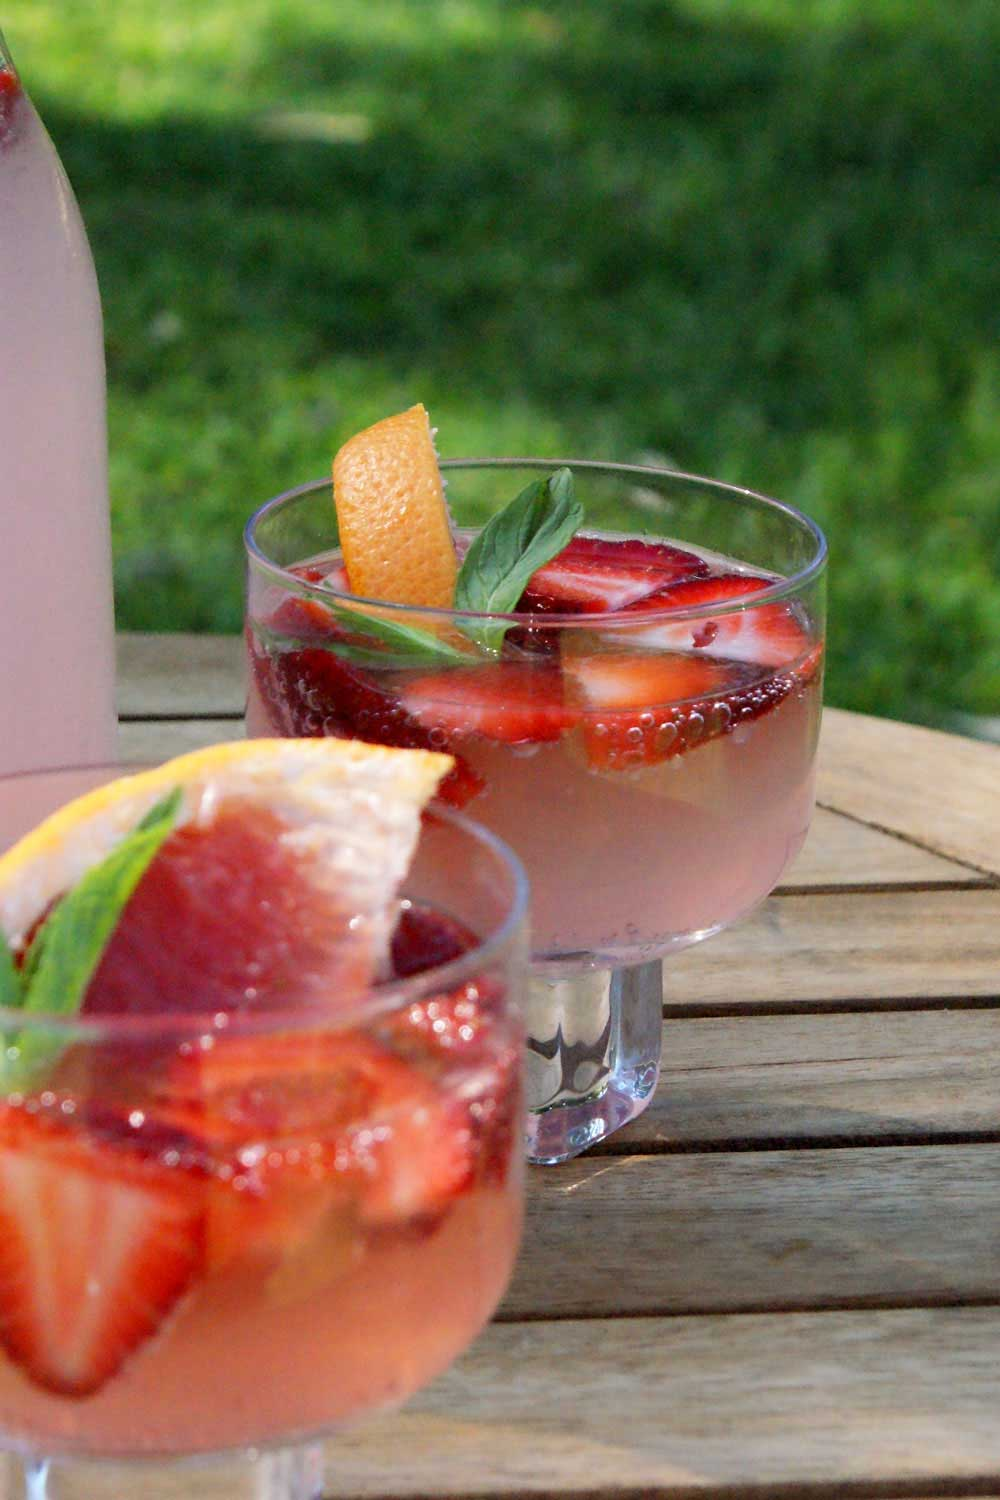 Pink Grapefruit and Strawberry Punch. Great summer drink with alcoholic and non alcoholic options.